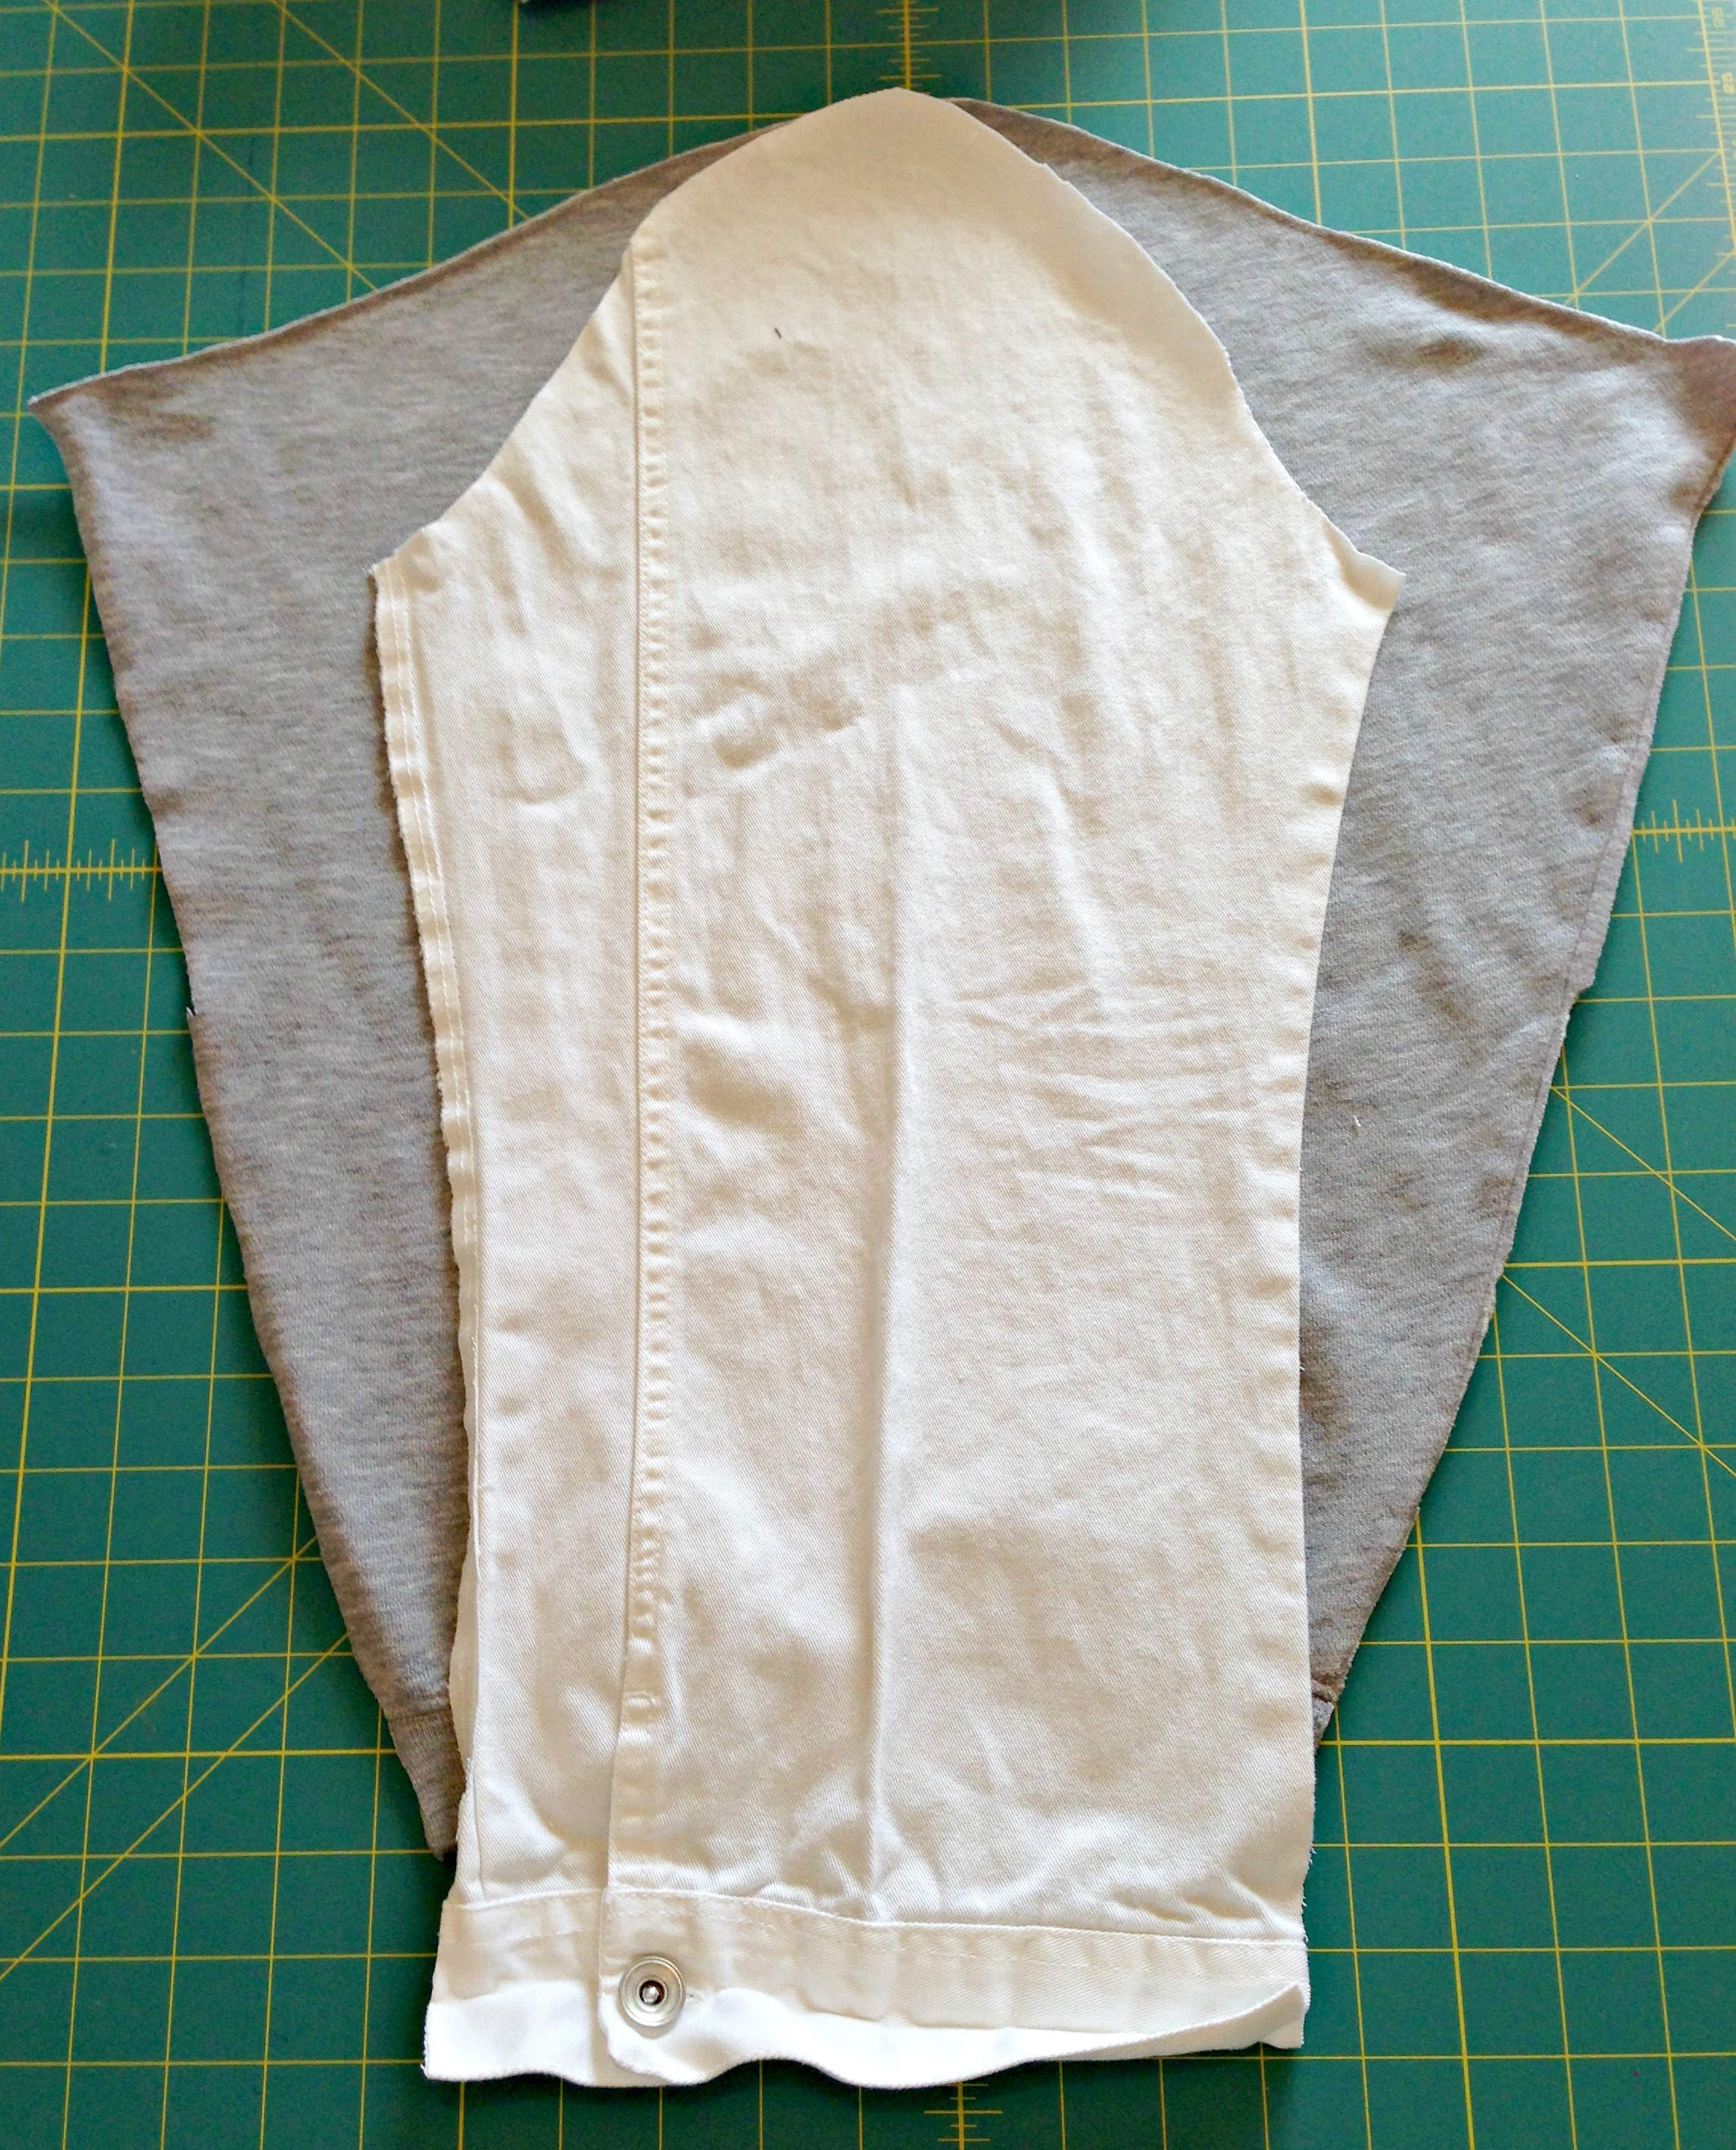 how to make a denim jacket with sweatshirt sleeves and hoodie